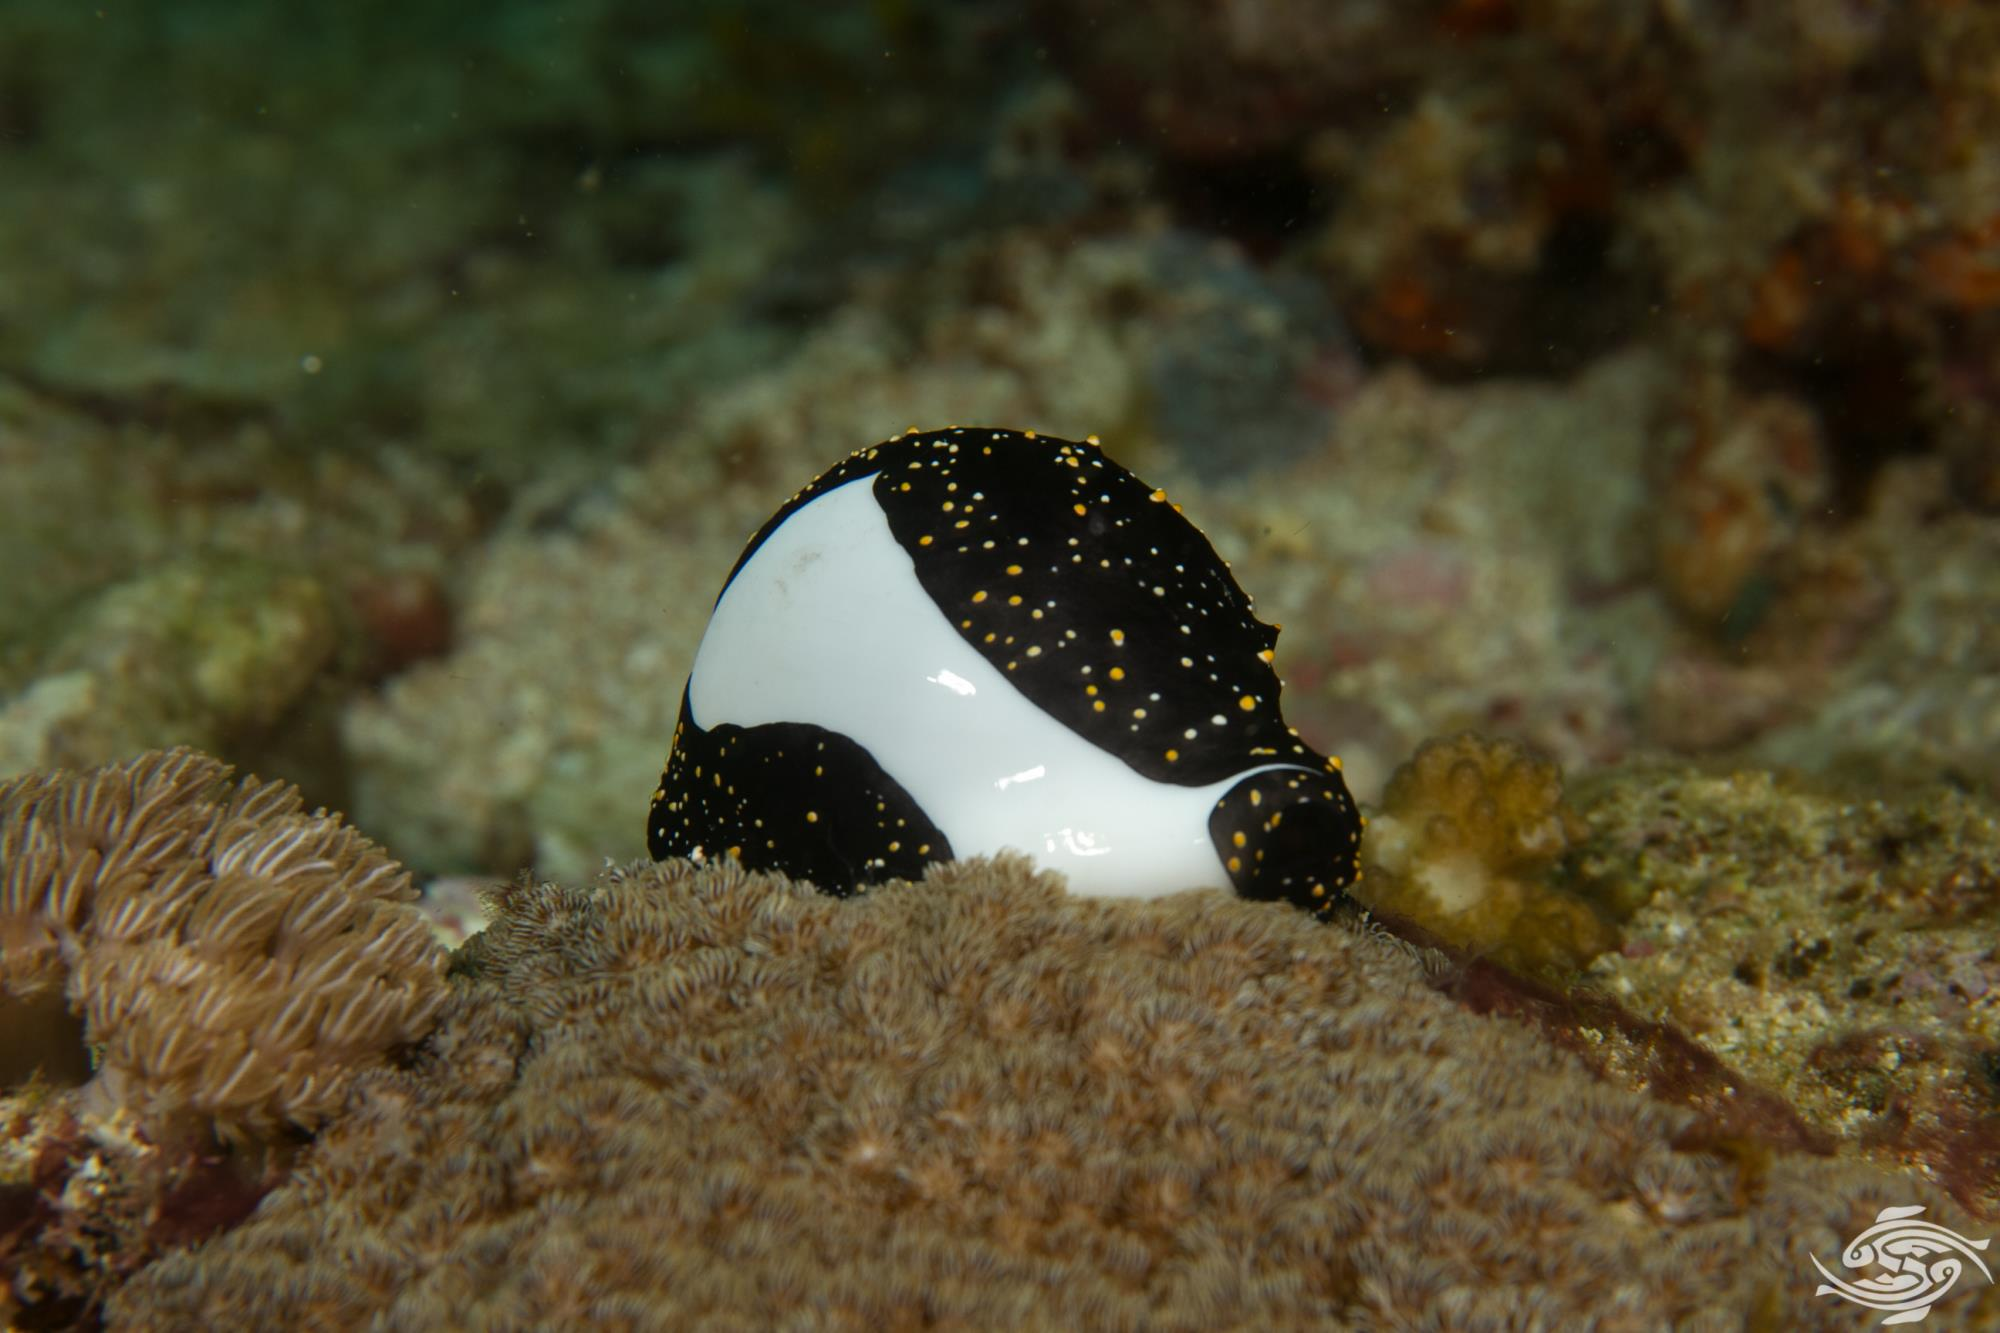 Ovula ovum, common name the common egg cowrie